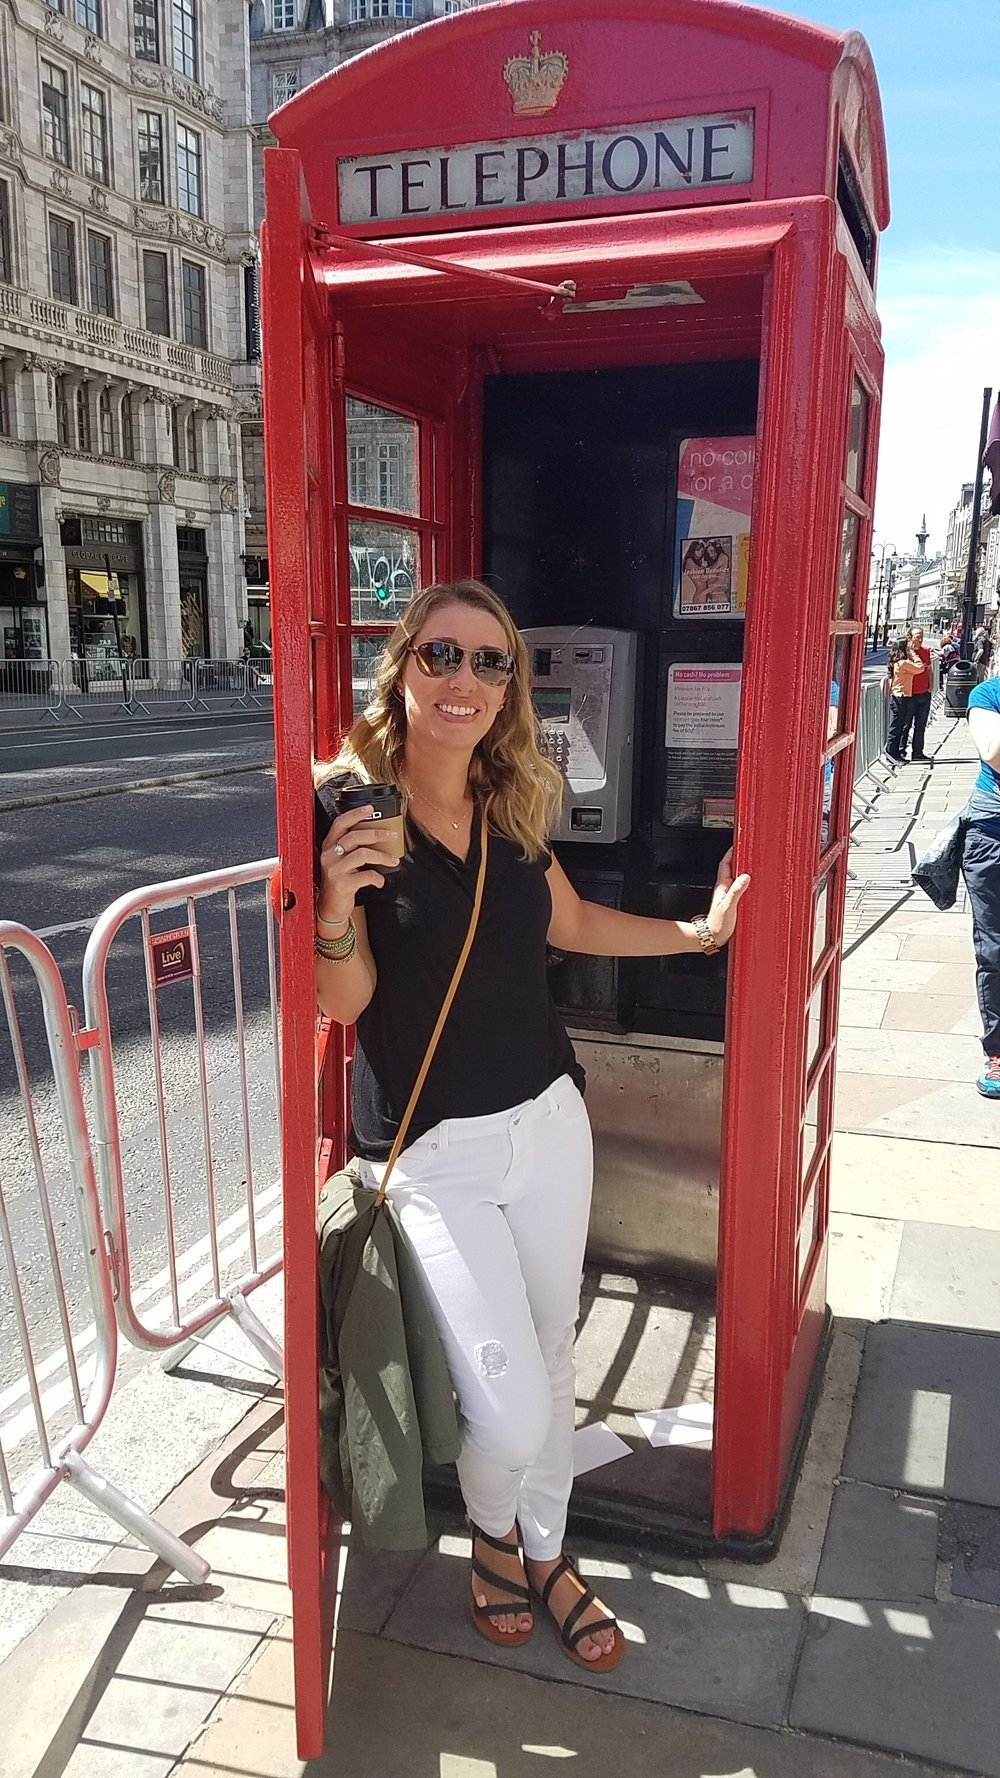 London Phone Booth 2017